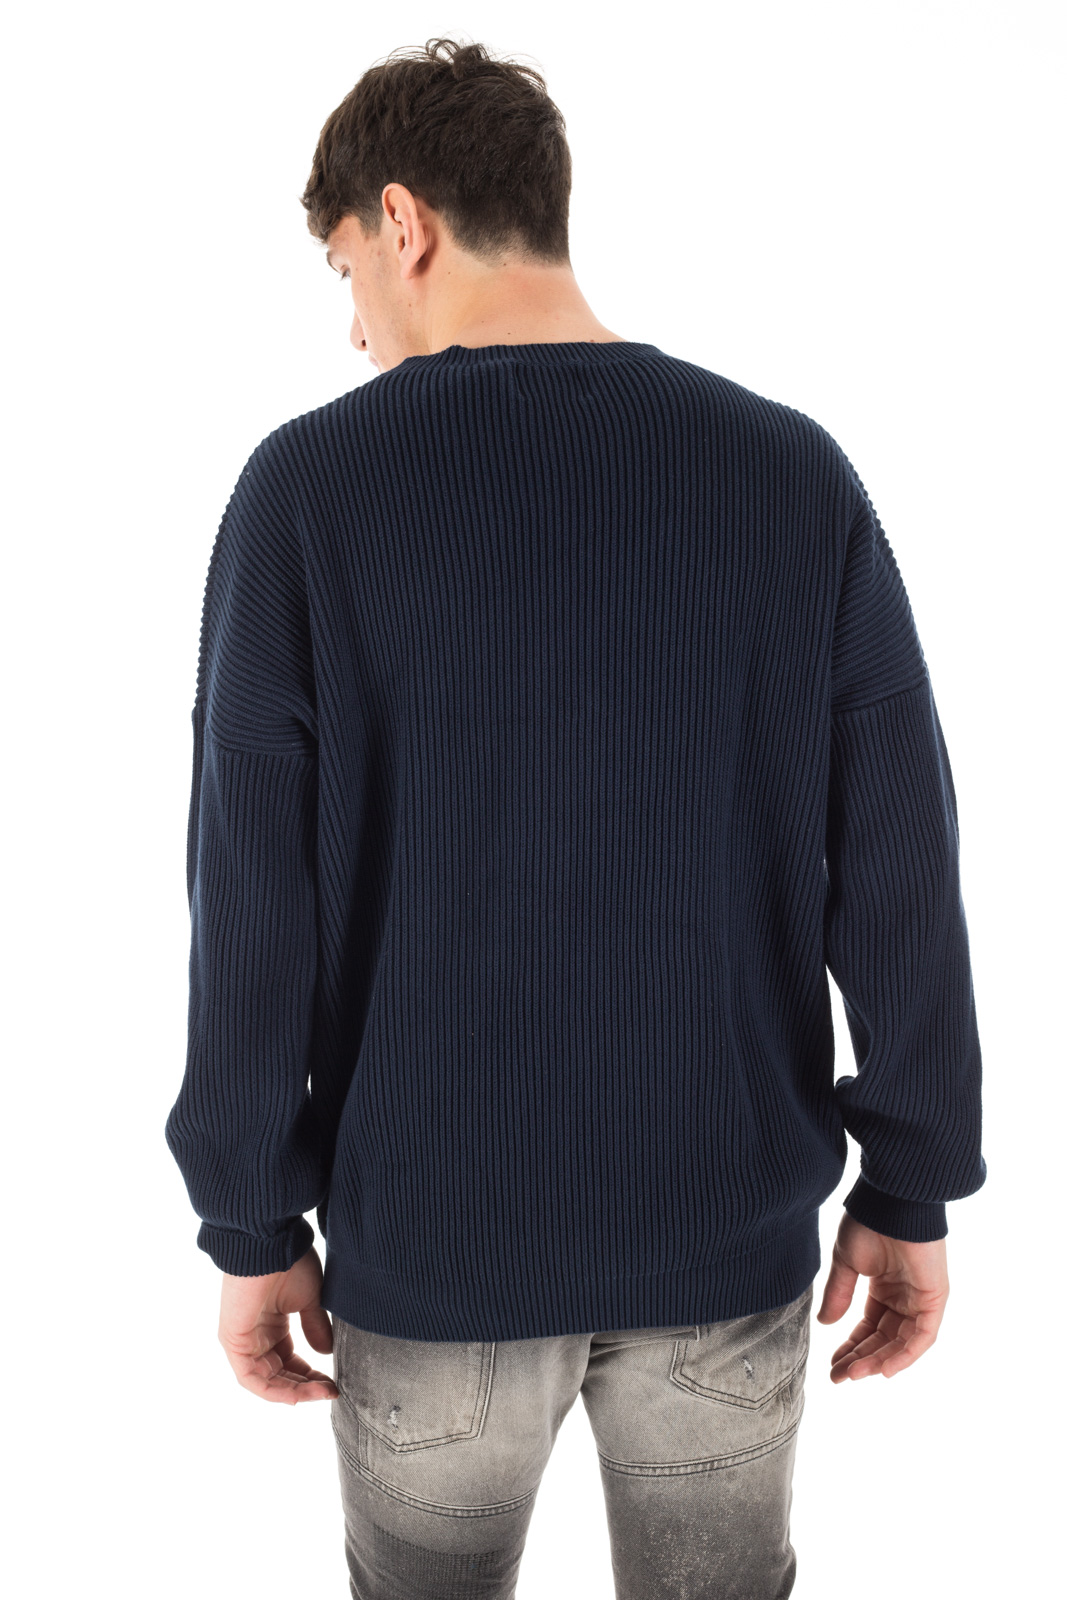 Clap Your Hand - Maglione a coste blu navy